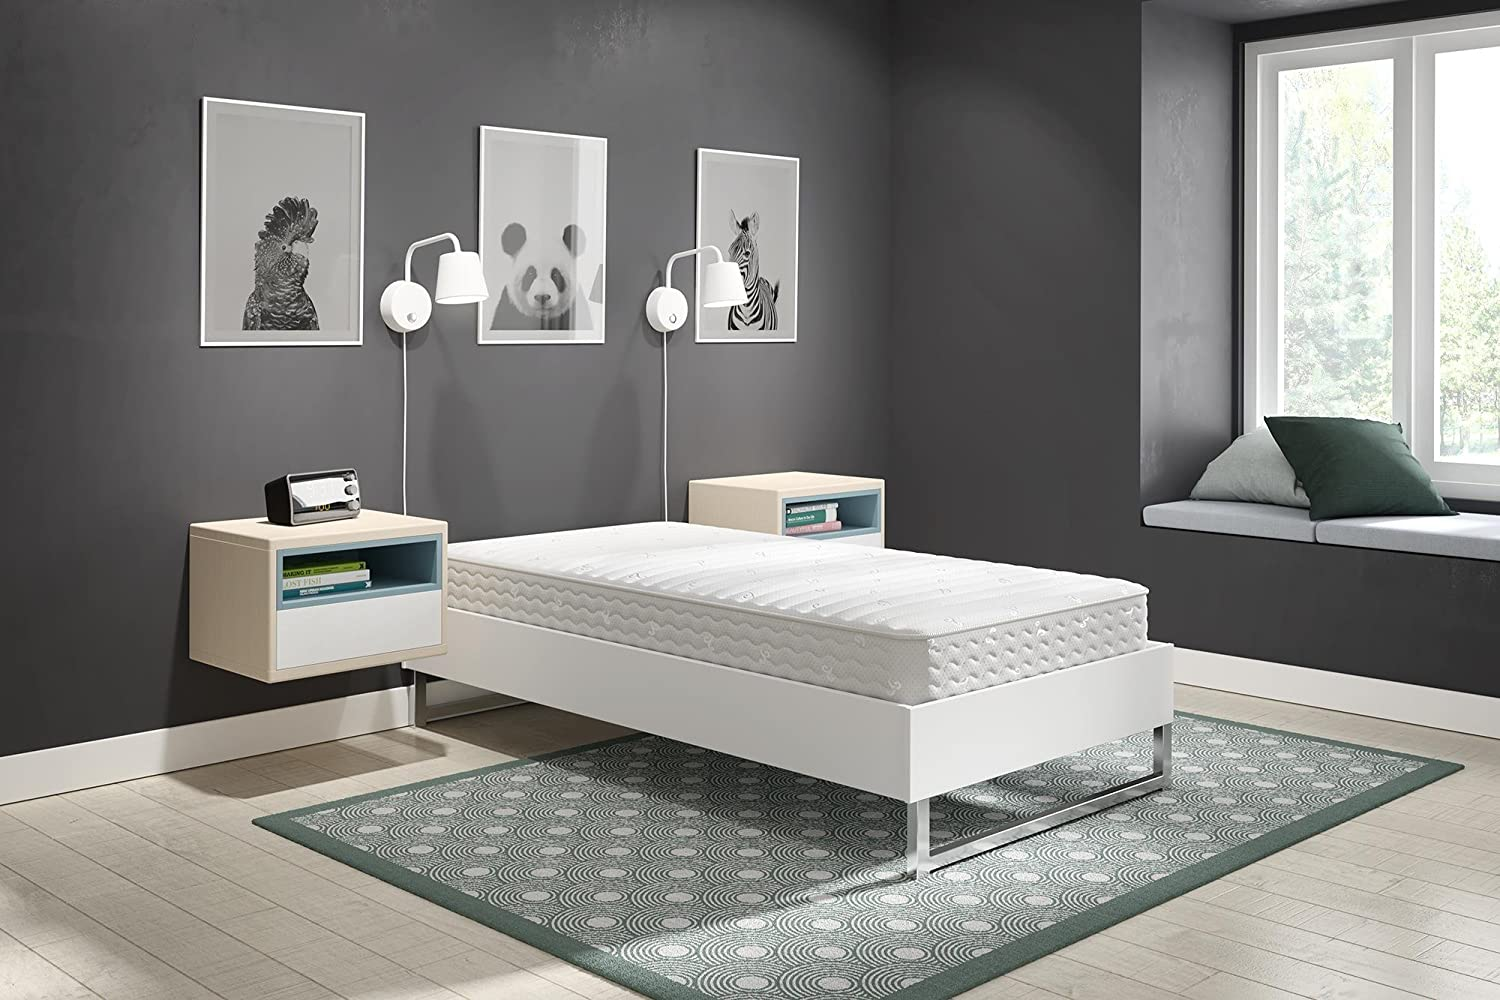 Furniture Independent Double Bed Base With 2 Storage Drawers Fixing Prices According To Quality Of Products Bed Frames & Divan Bases